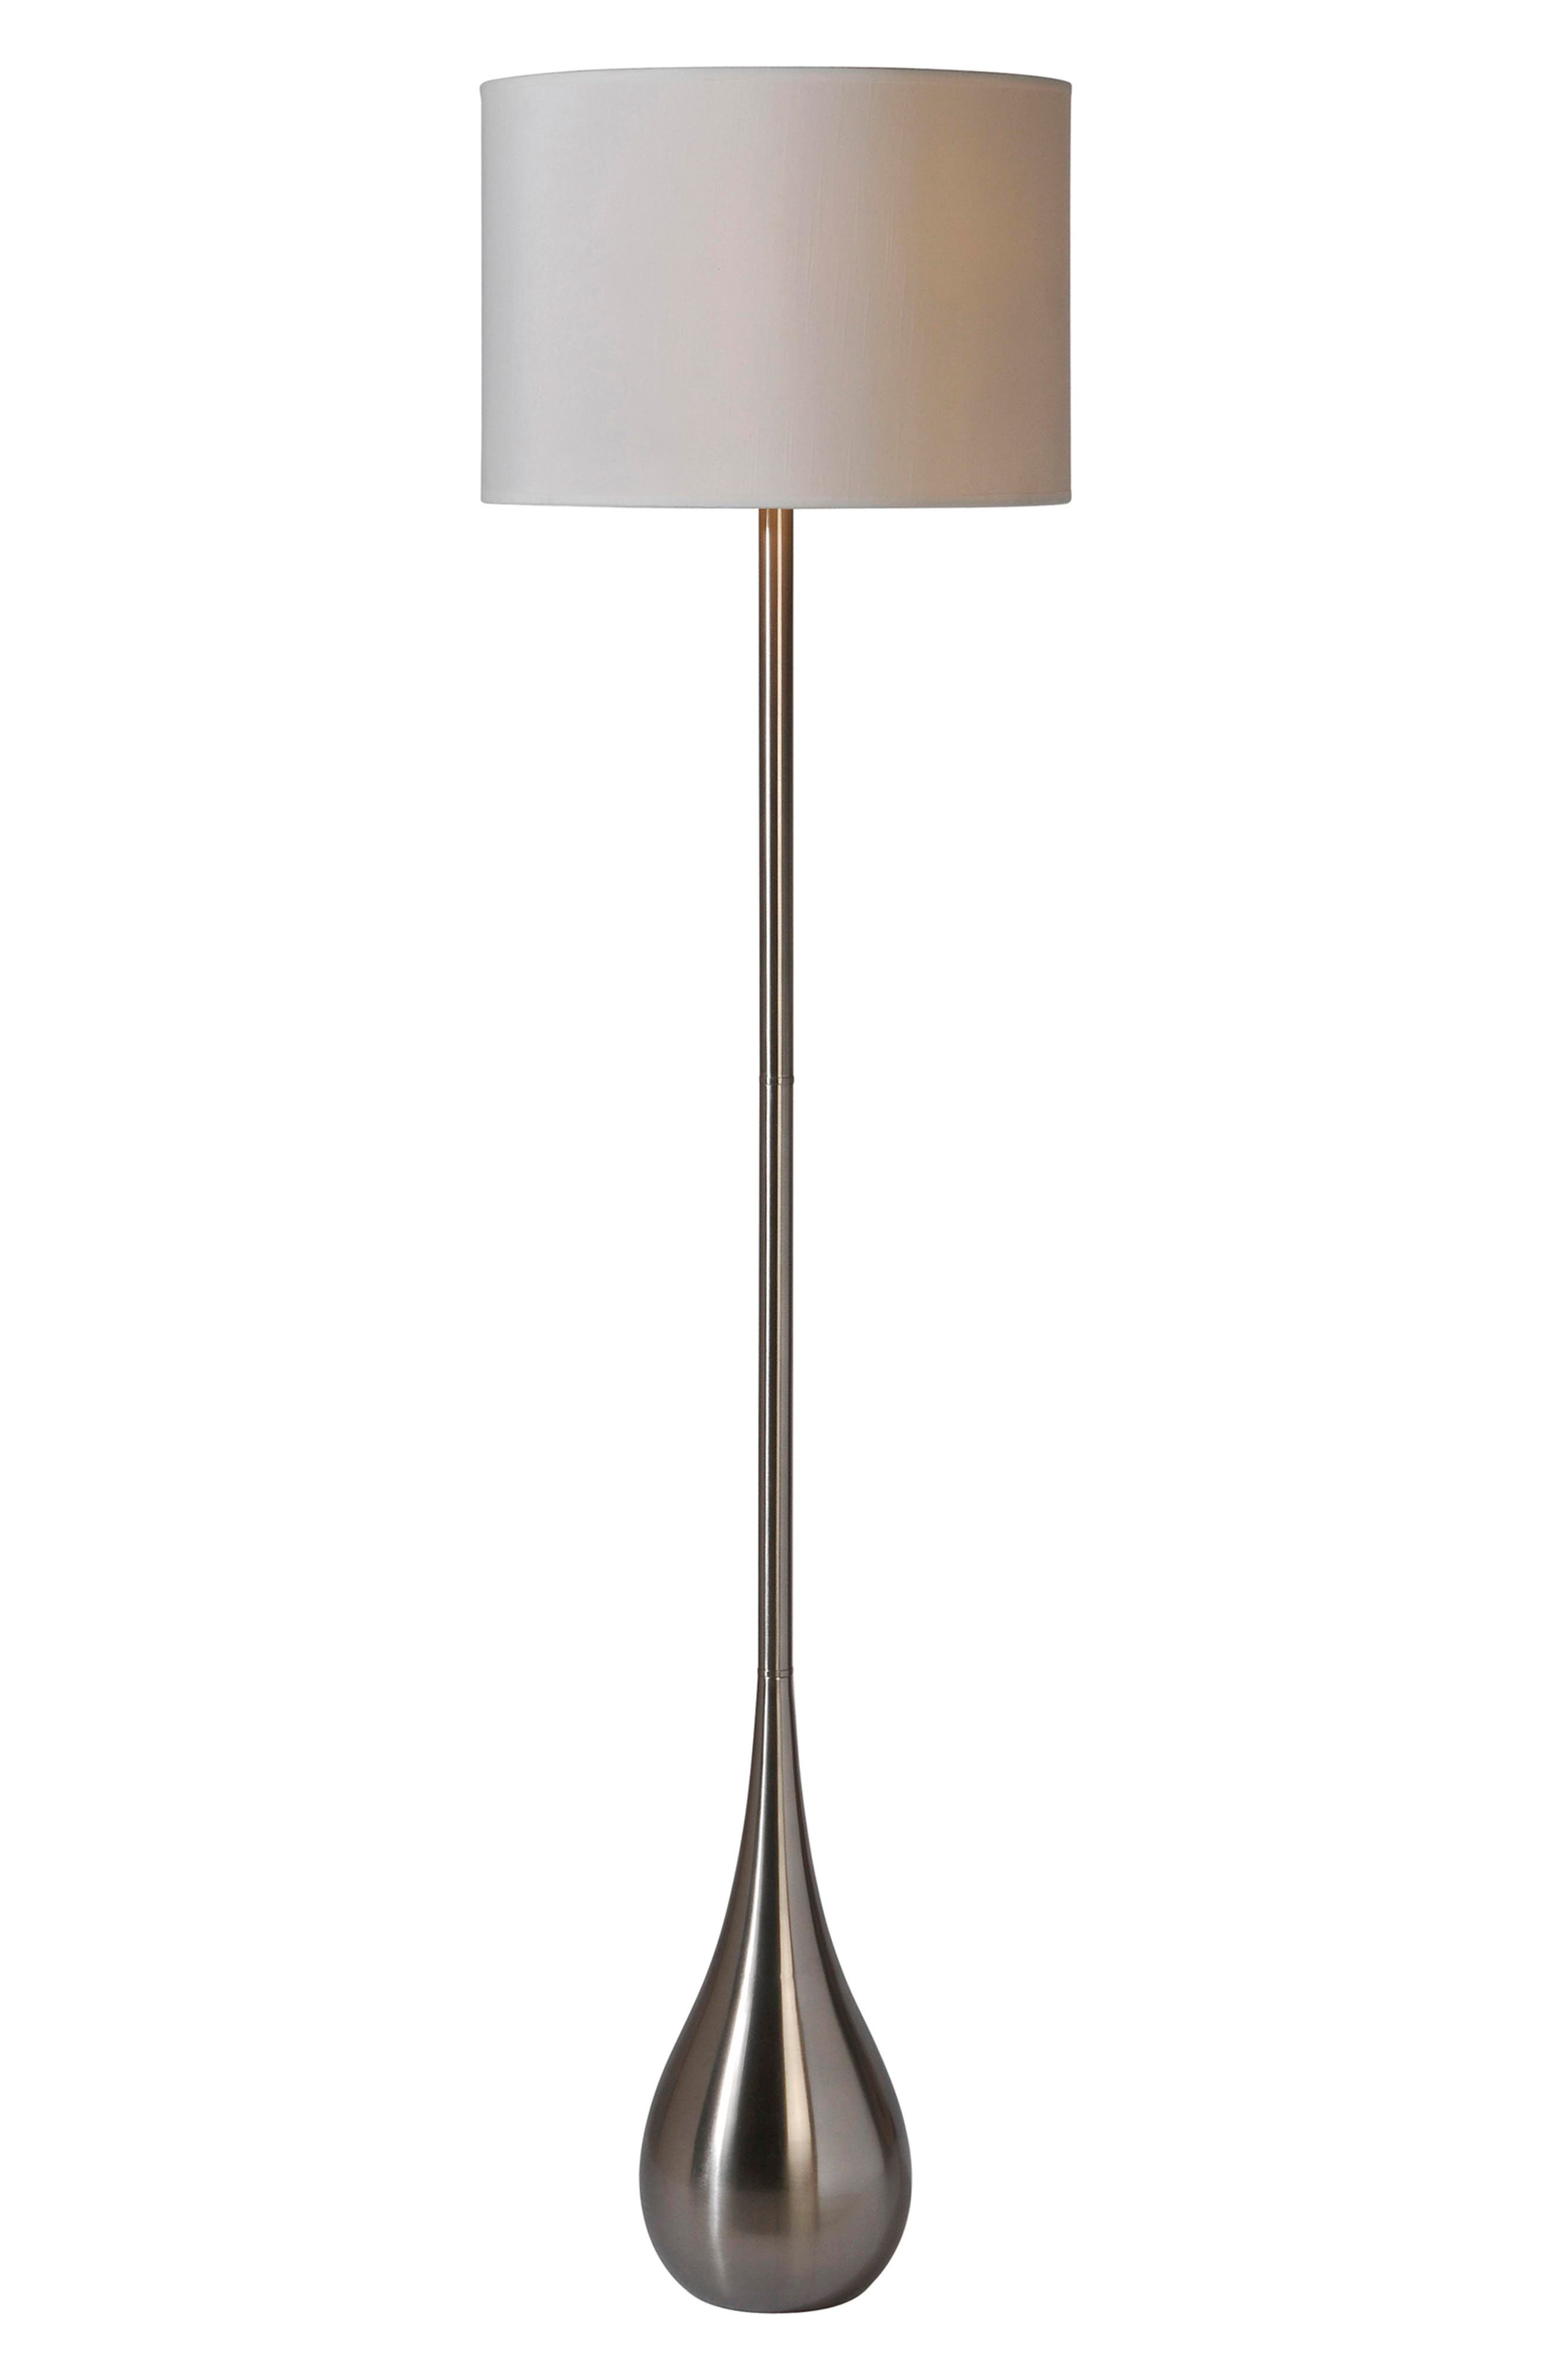 Satin Nickel Floor Lamp,                             Main thumbnail 1, color,                             040